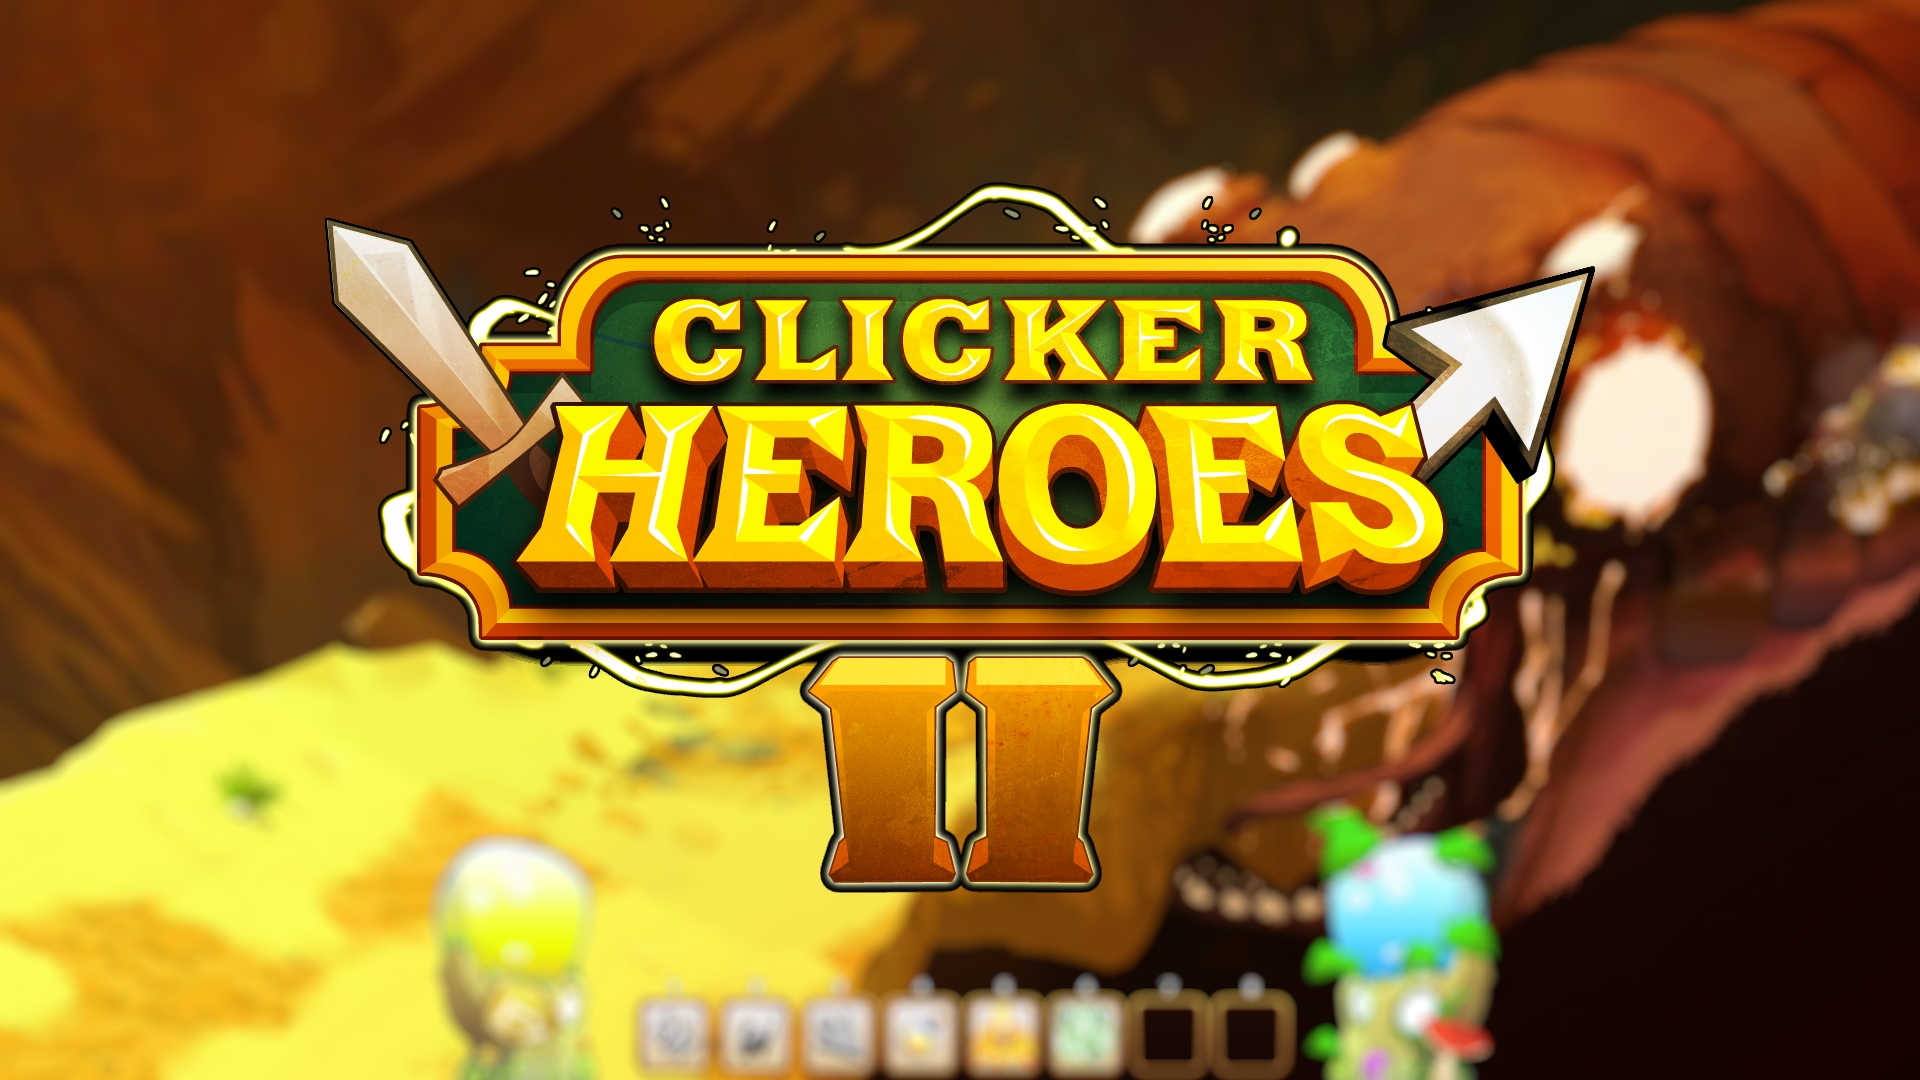 Clicker Heroes 2 Early Access Now Available - Gaming Adept